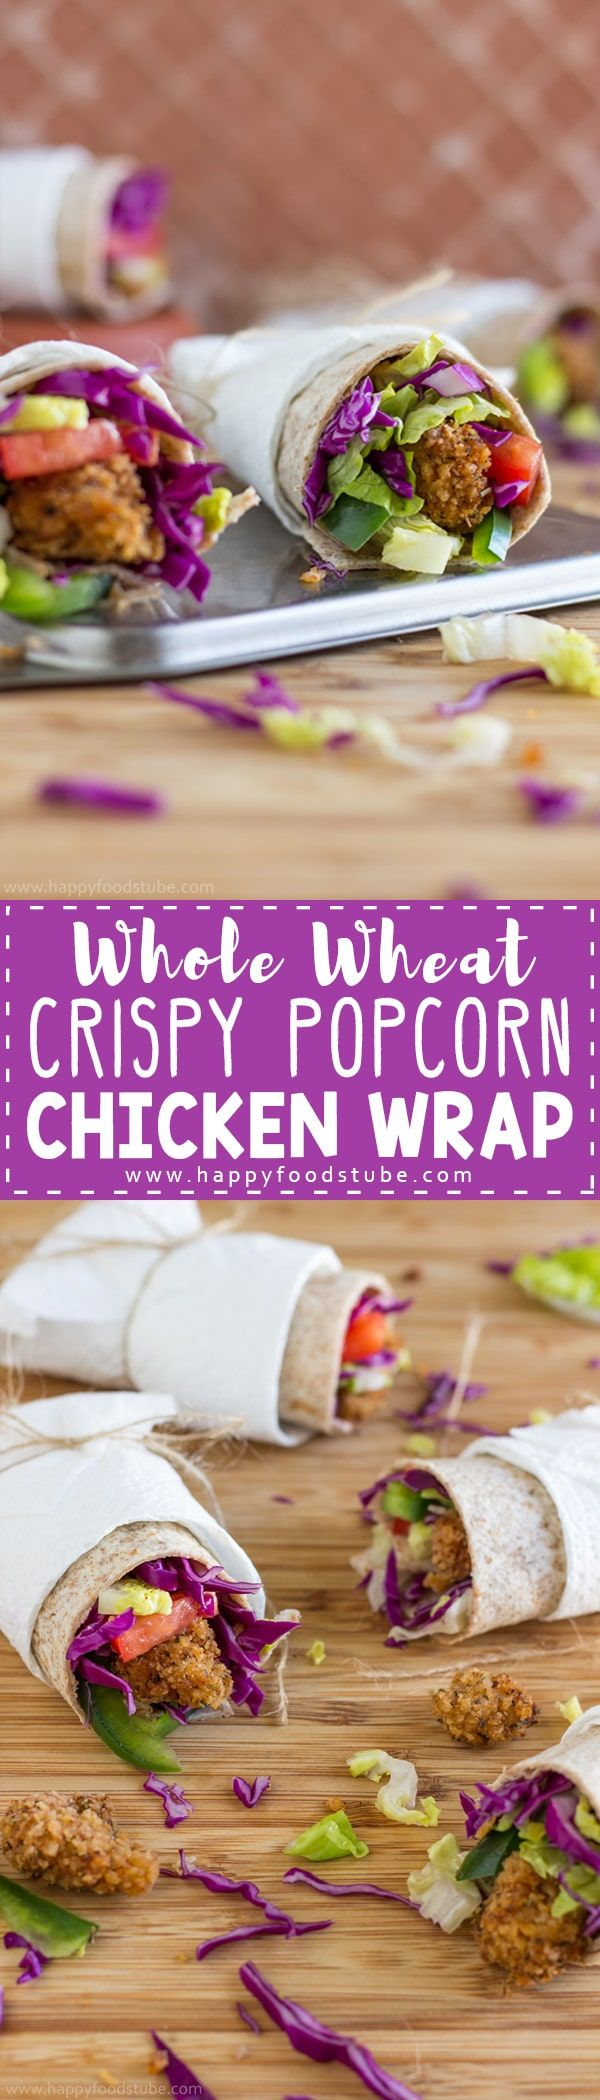 Whole Wheat Crispy Popcorn Chicken Wrap. Homemade popcorn chicken, lots of vegetables all wrapped in whole wheat tortilla. Great snack or light lunch via @happyfoodstube